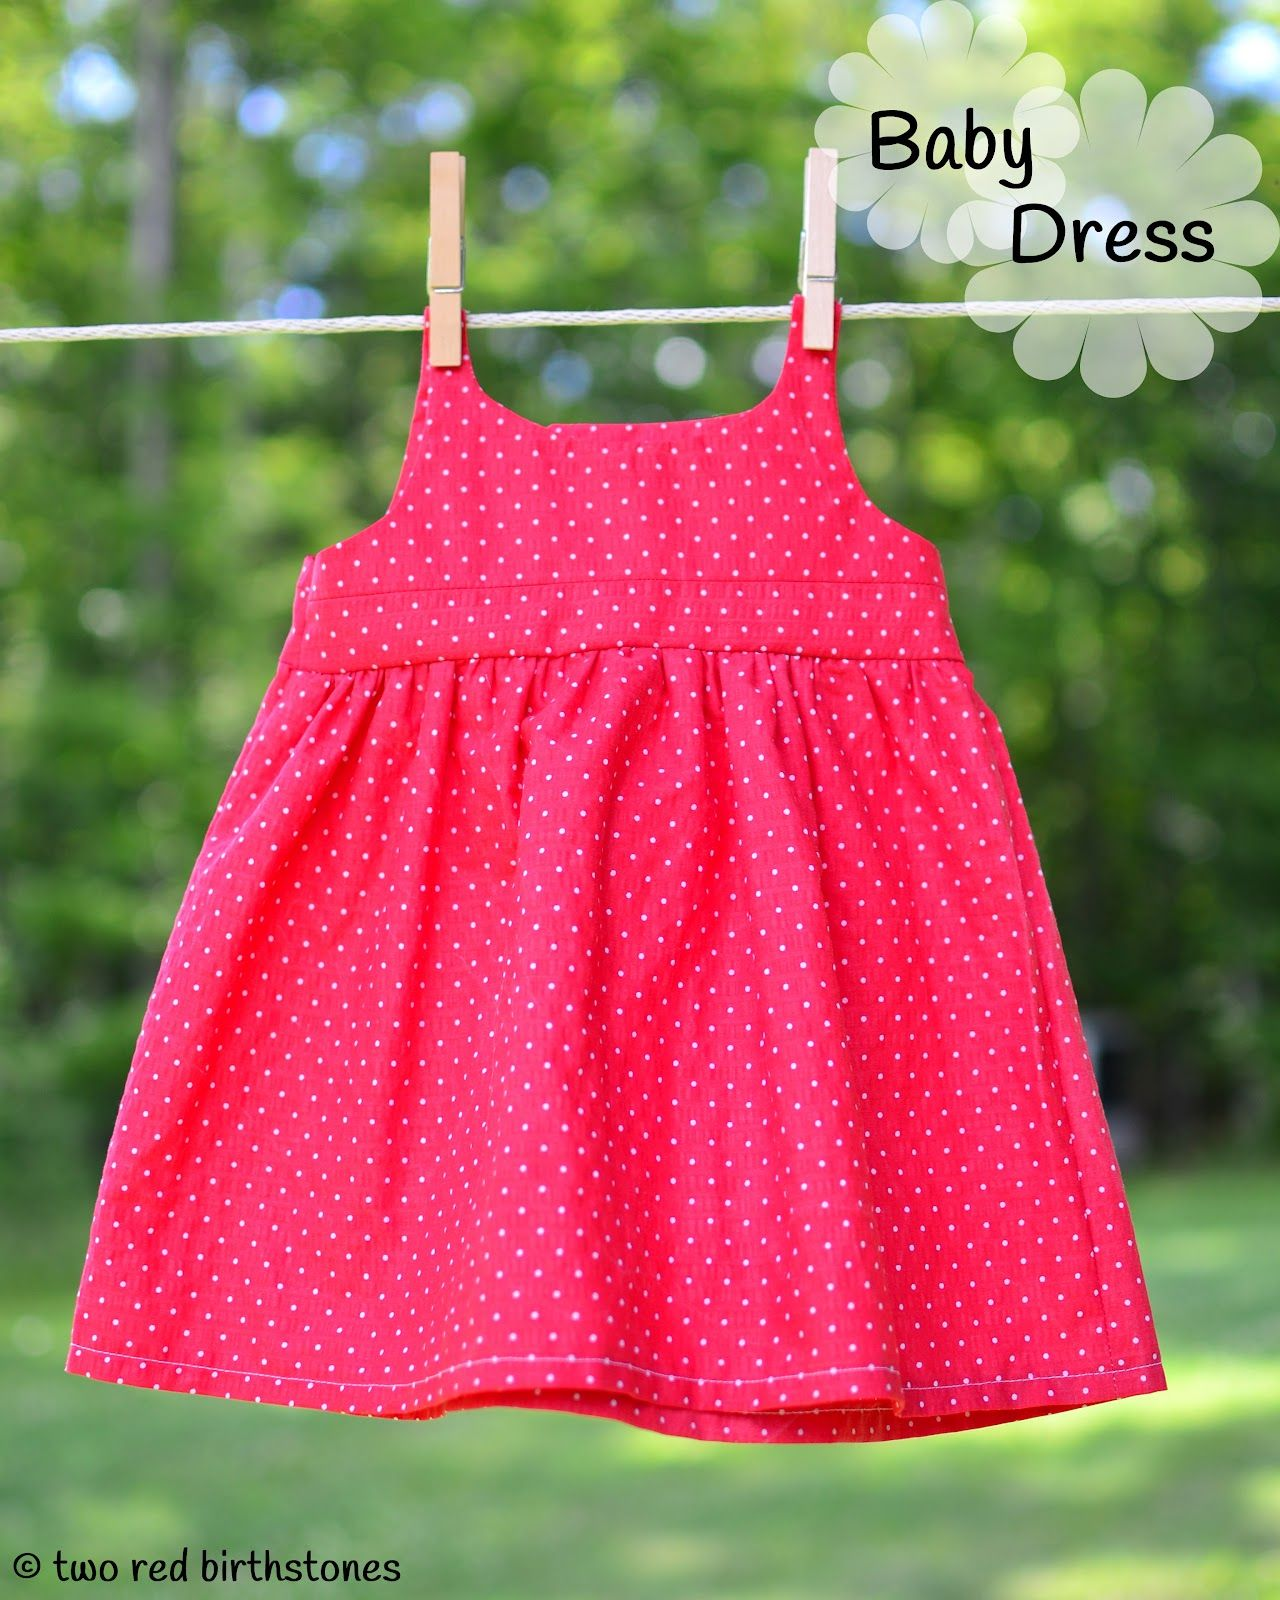 Baby Frock Sewing Tutorials : frock, sewing, tutorials, Crafts, Dress, Tutorials,